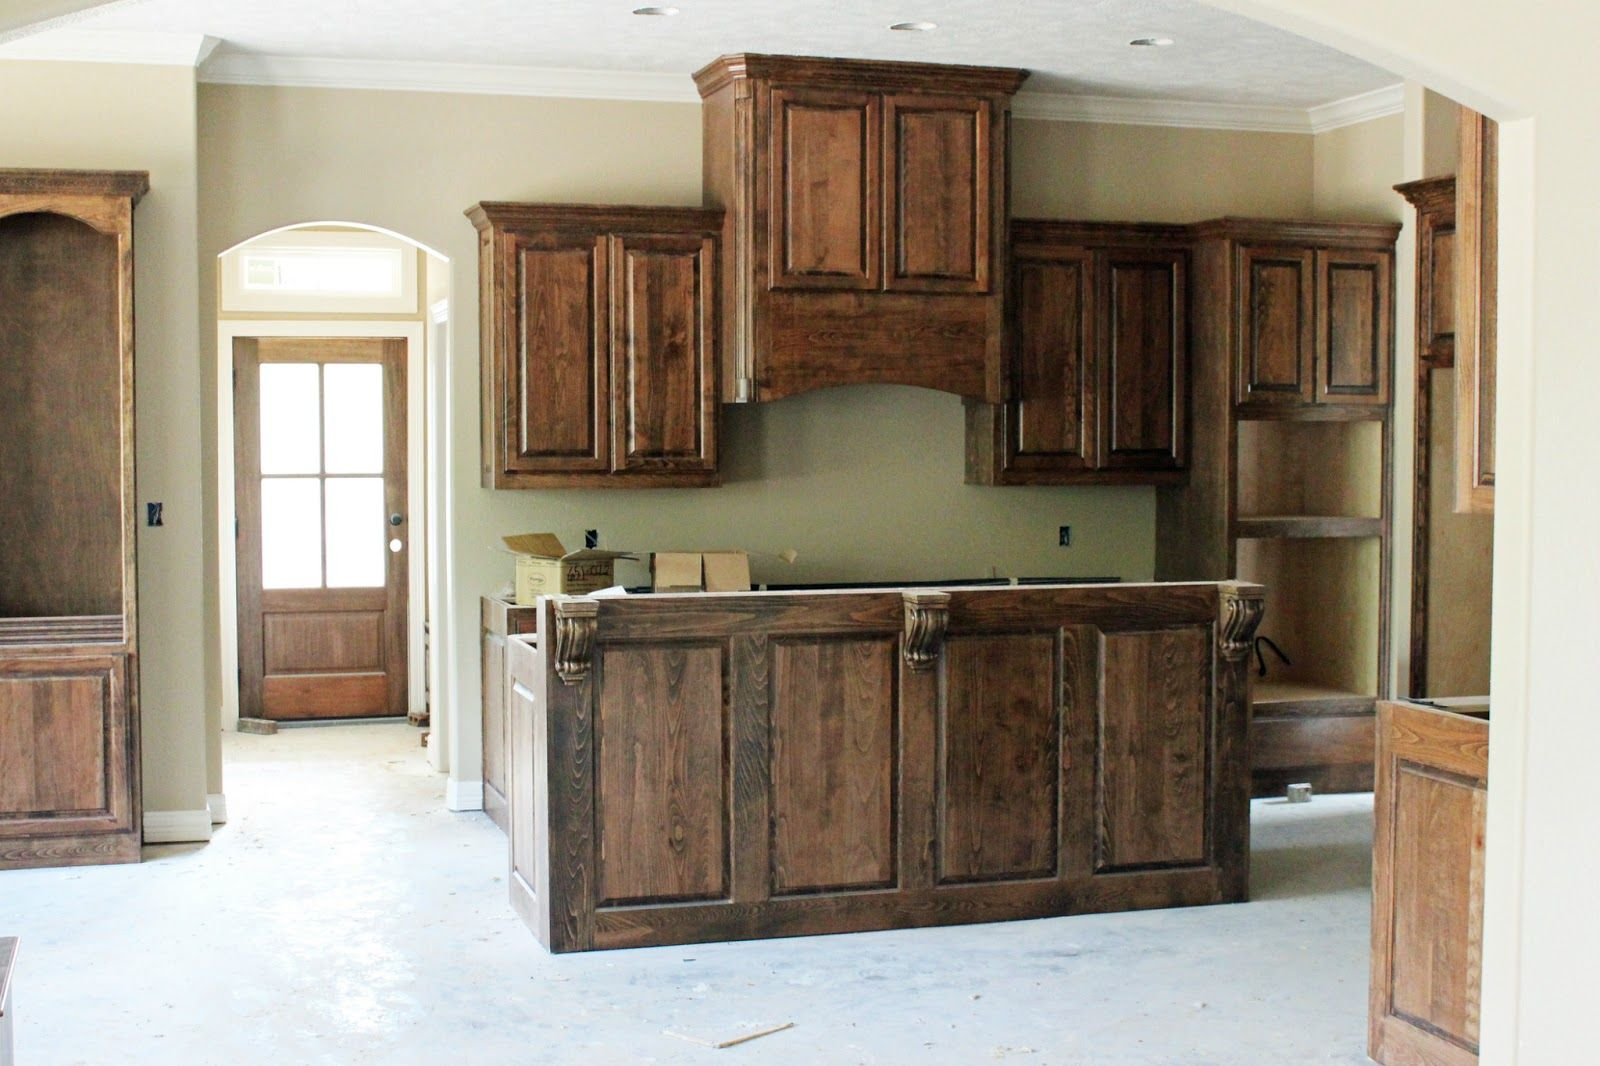 Bon Photos Of Acadian Stye Homes | Here Are The Kitchen Cabinets And A View  Into The